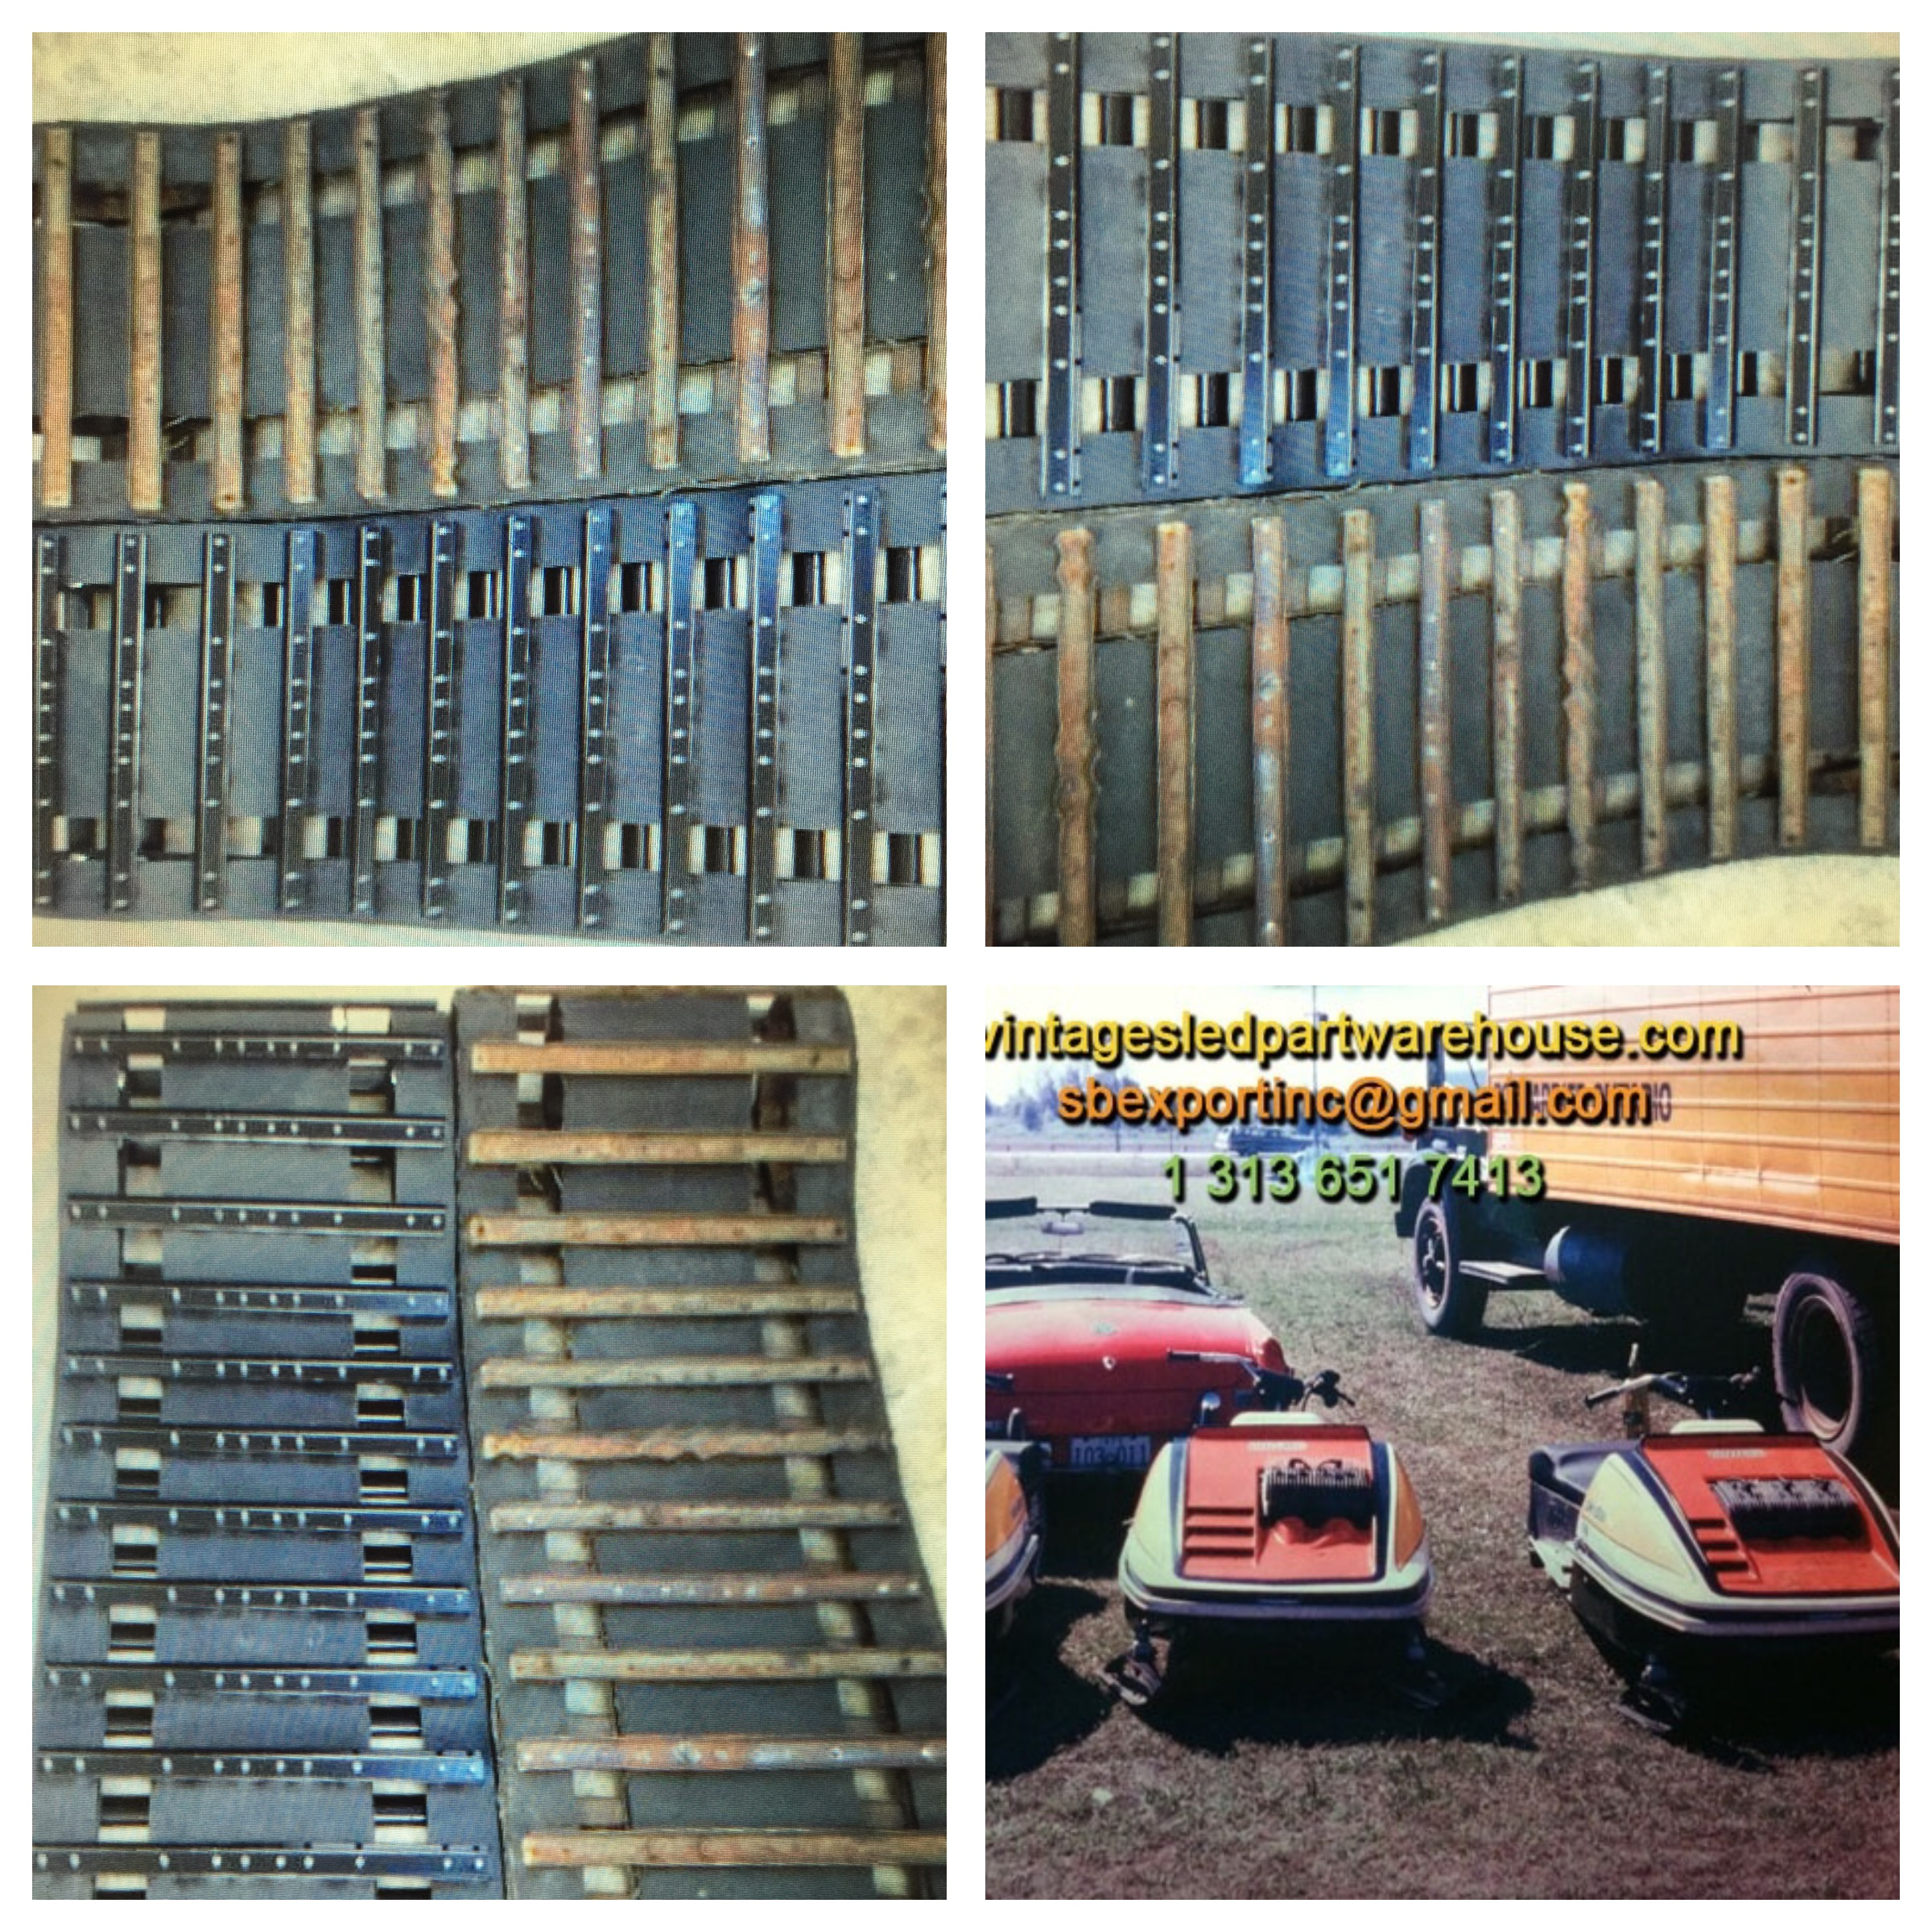 REPRODUCTION VINTAGE PARTS HOODS SEATS FUEL TANKS PIPES